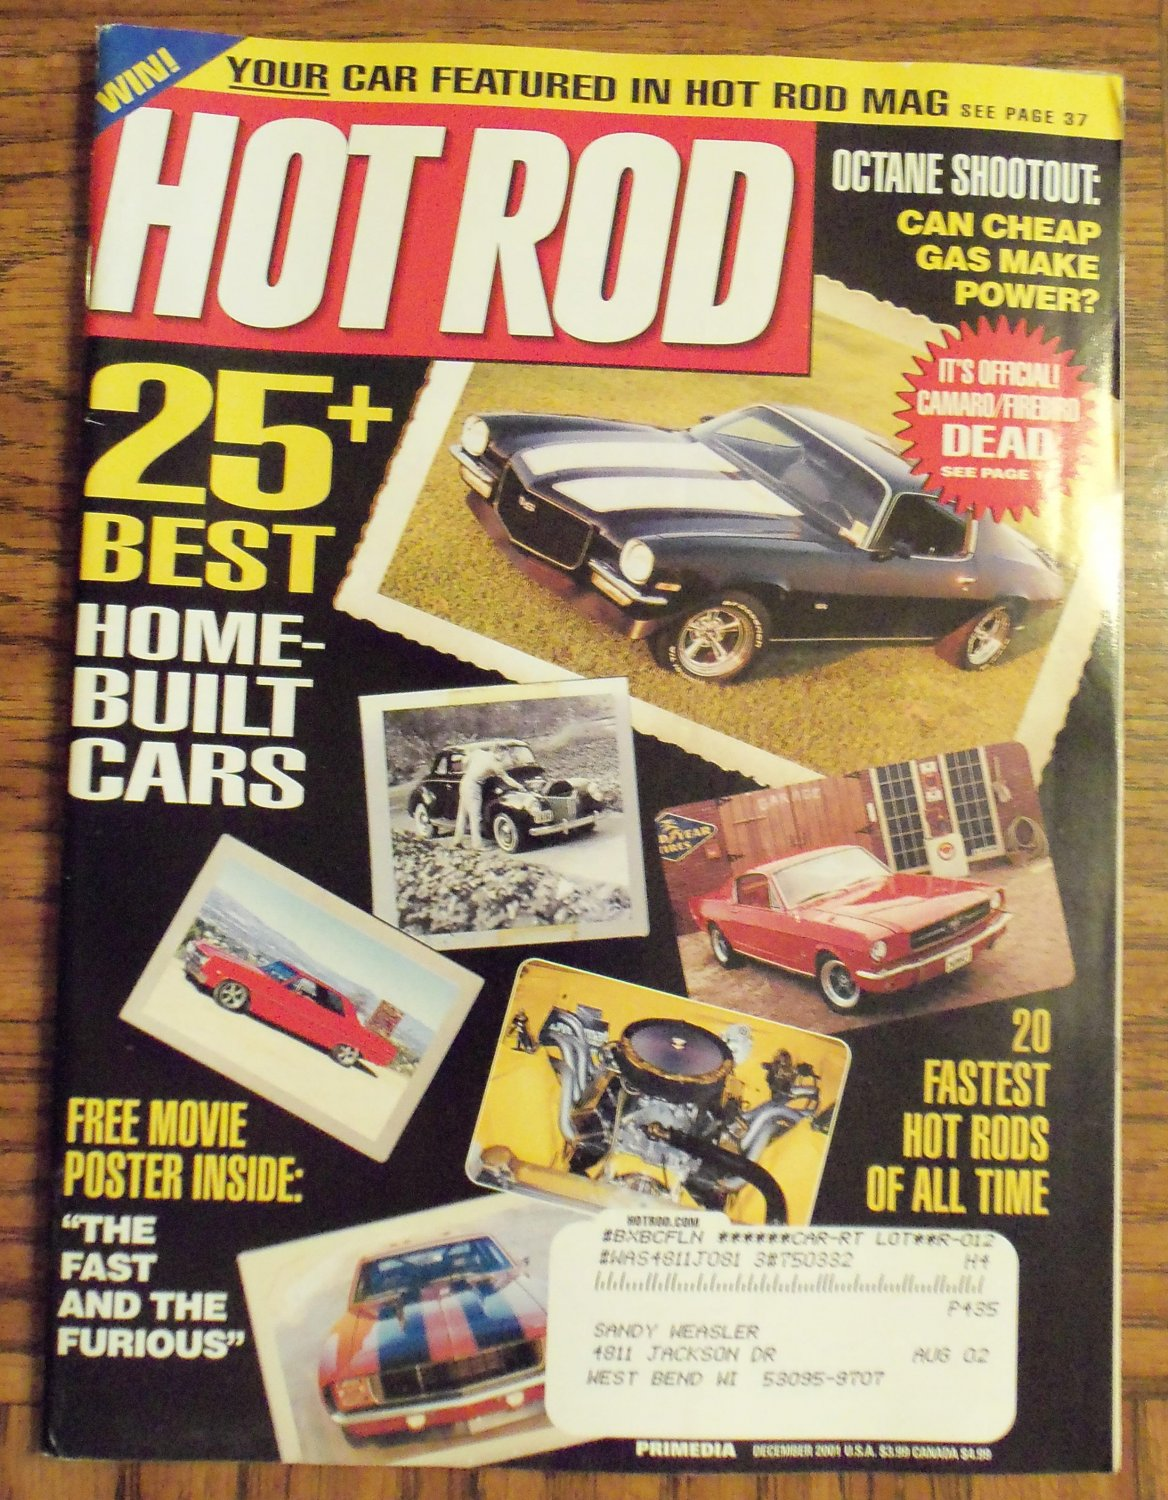 Hot Rod December 2001 25 Best Home Built Cars Back Issue